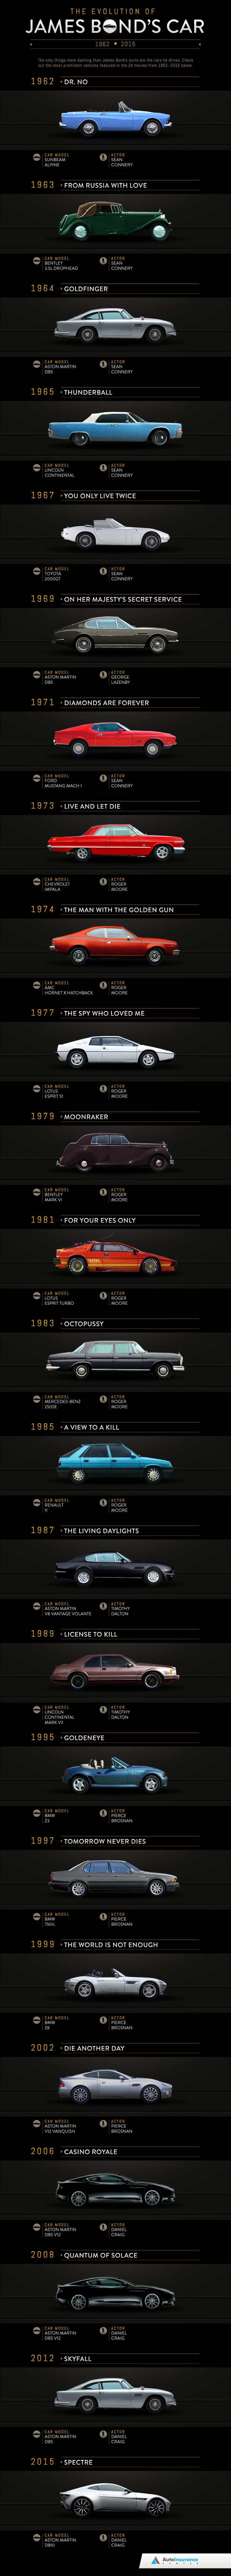 Les voitures de James Bond